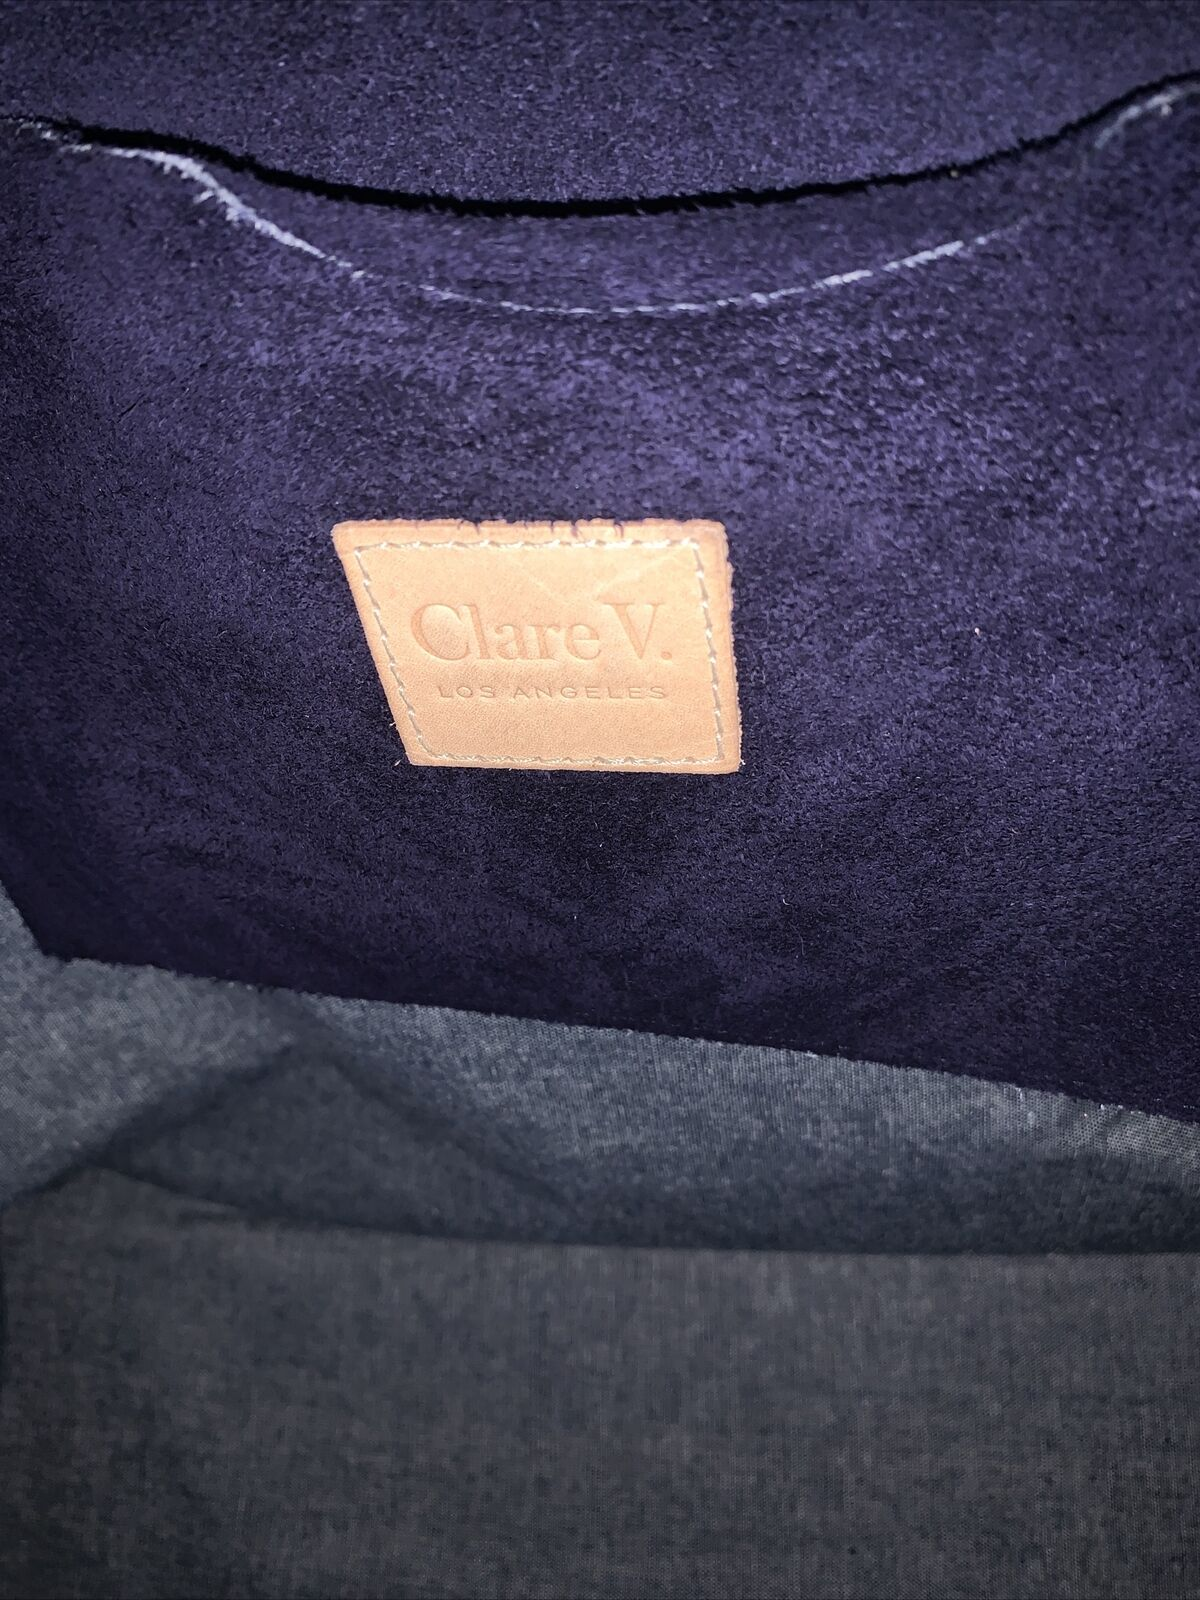 Claire V Simple Blue Suede Tote - image 7